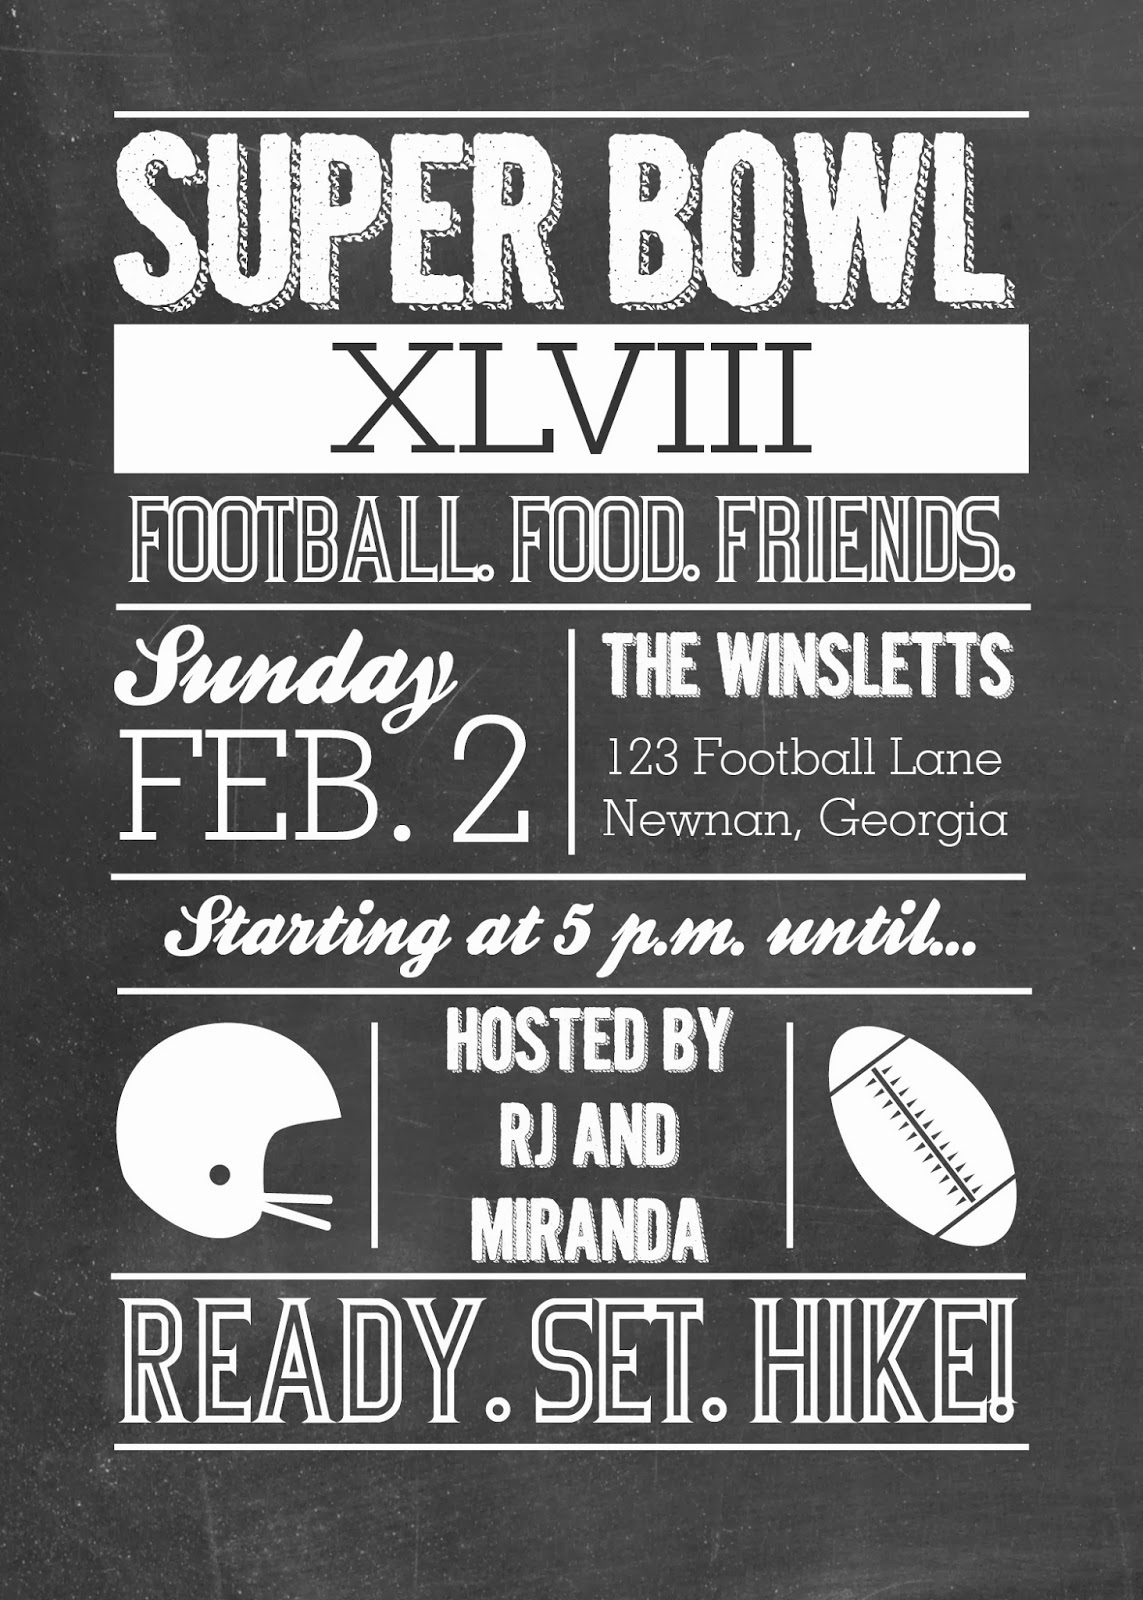 Printable Football Party Invitations was awesome invitation template